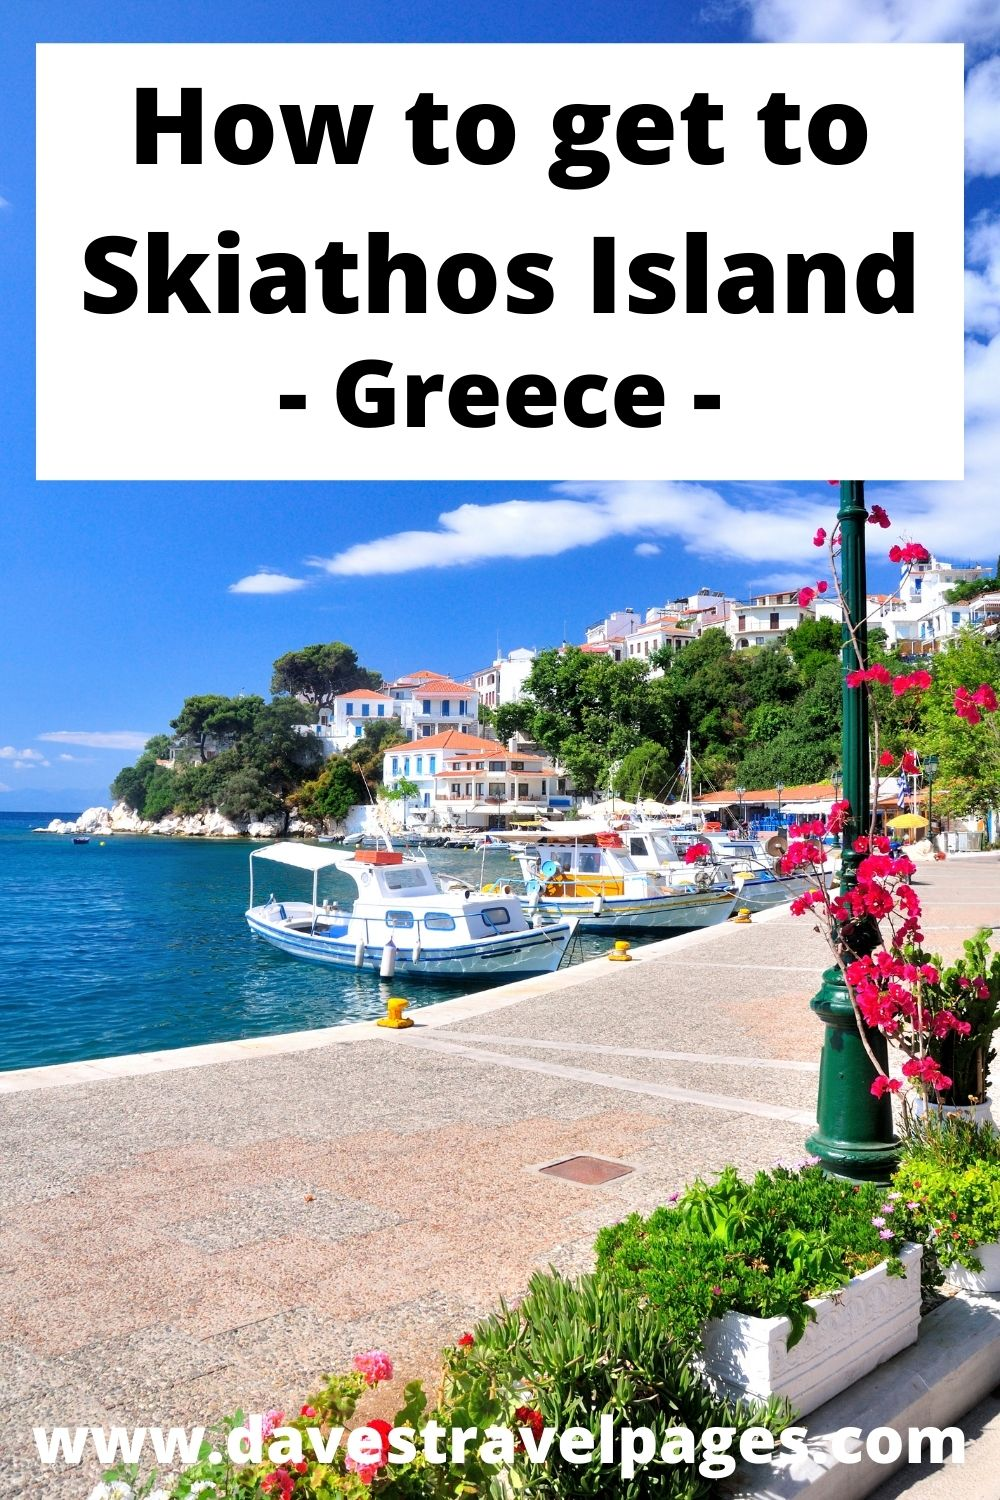 How to get to the island of Skiathos in Greece